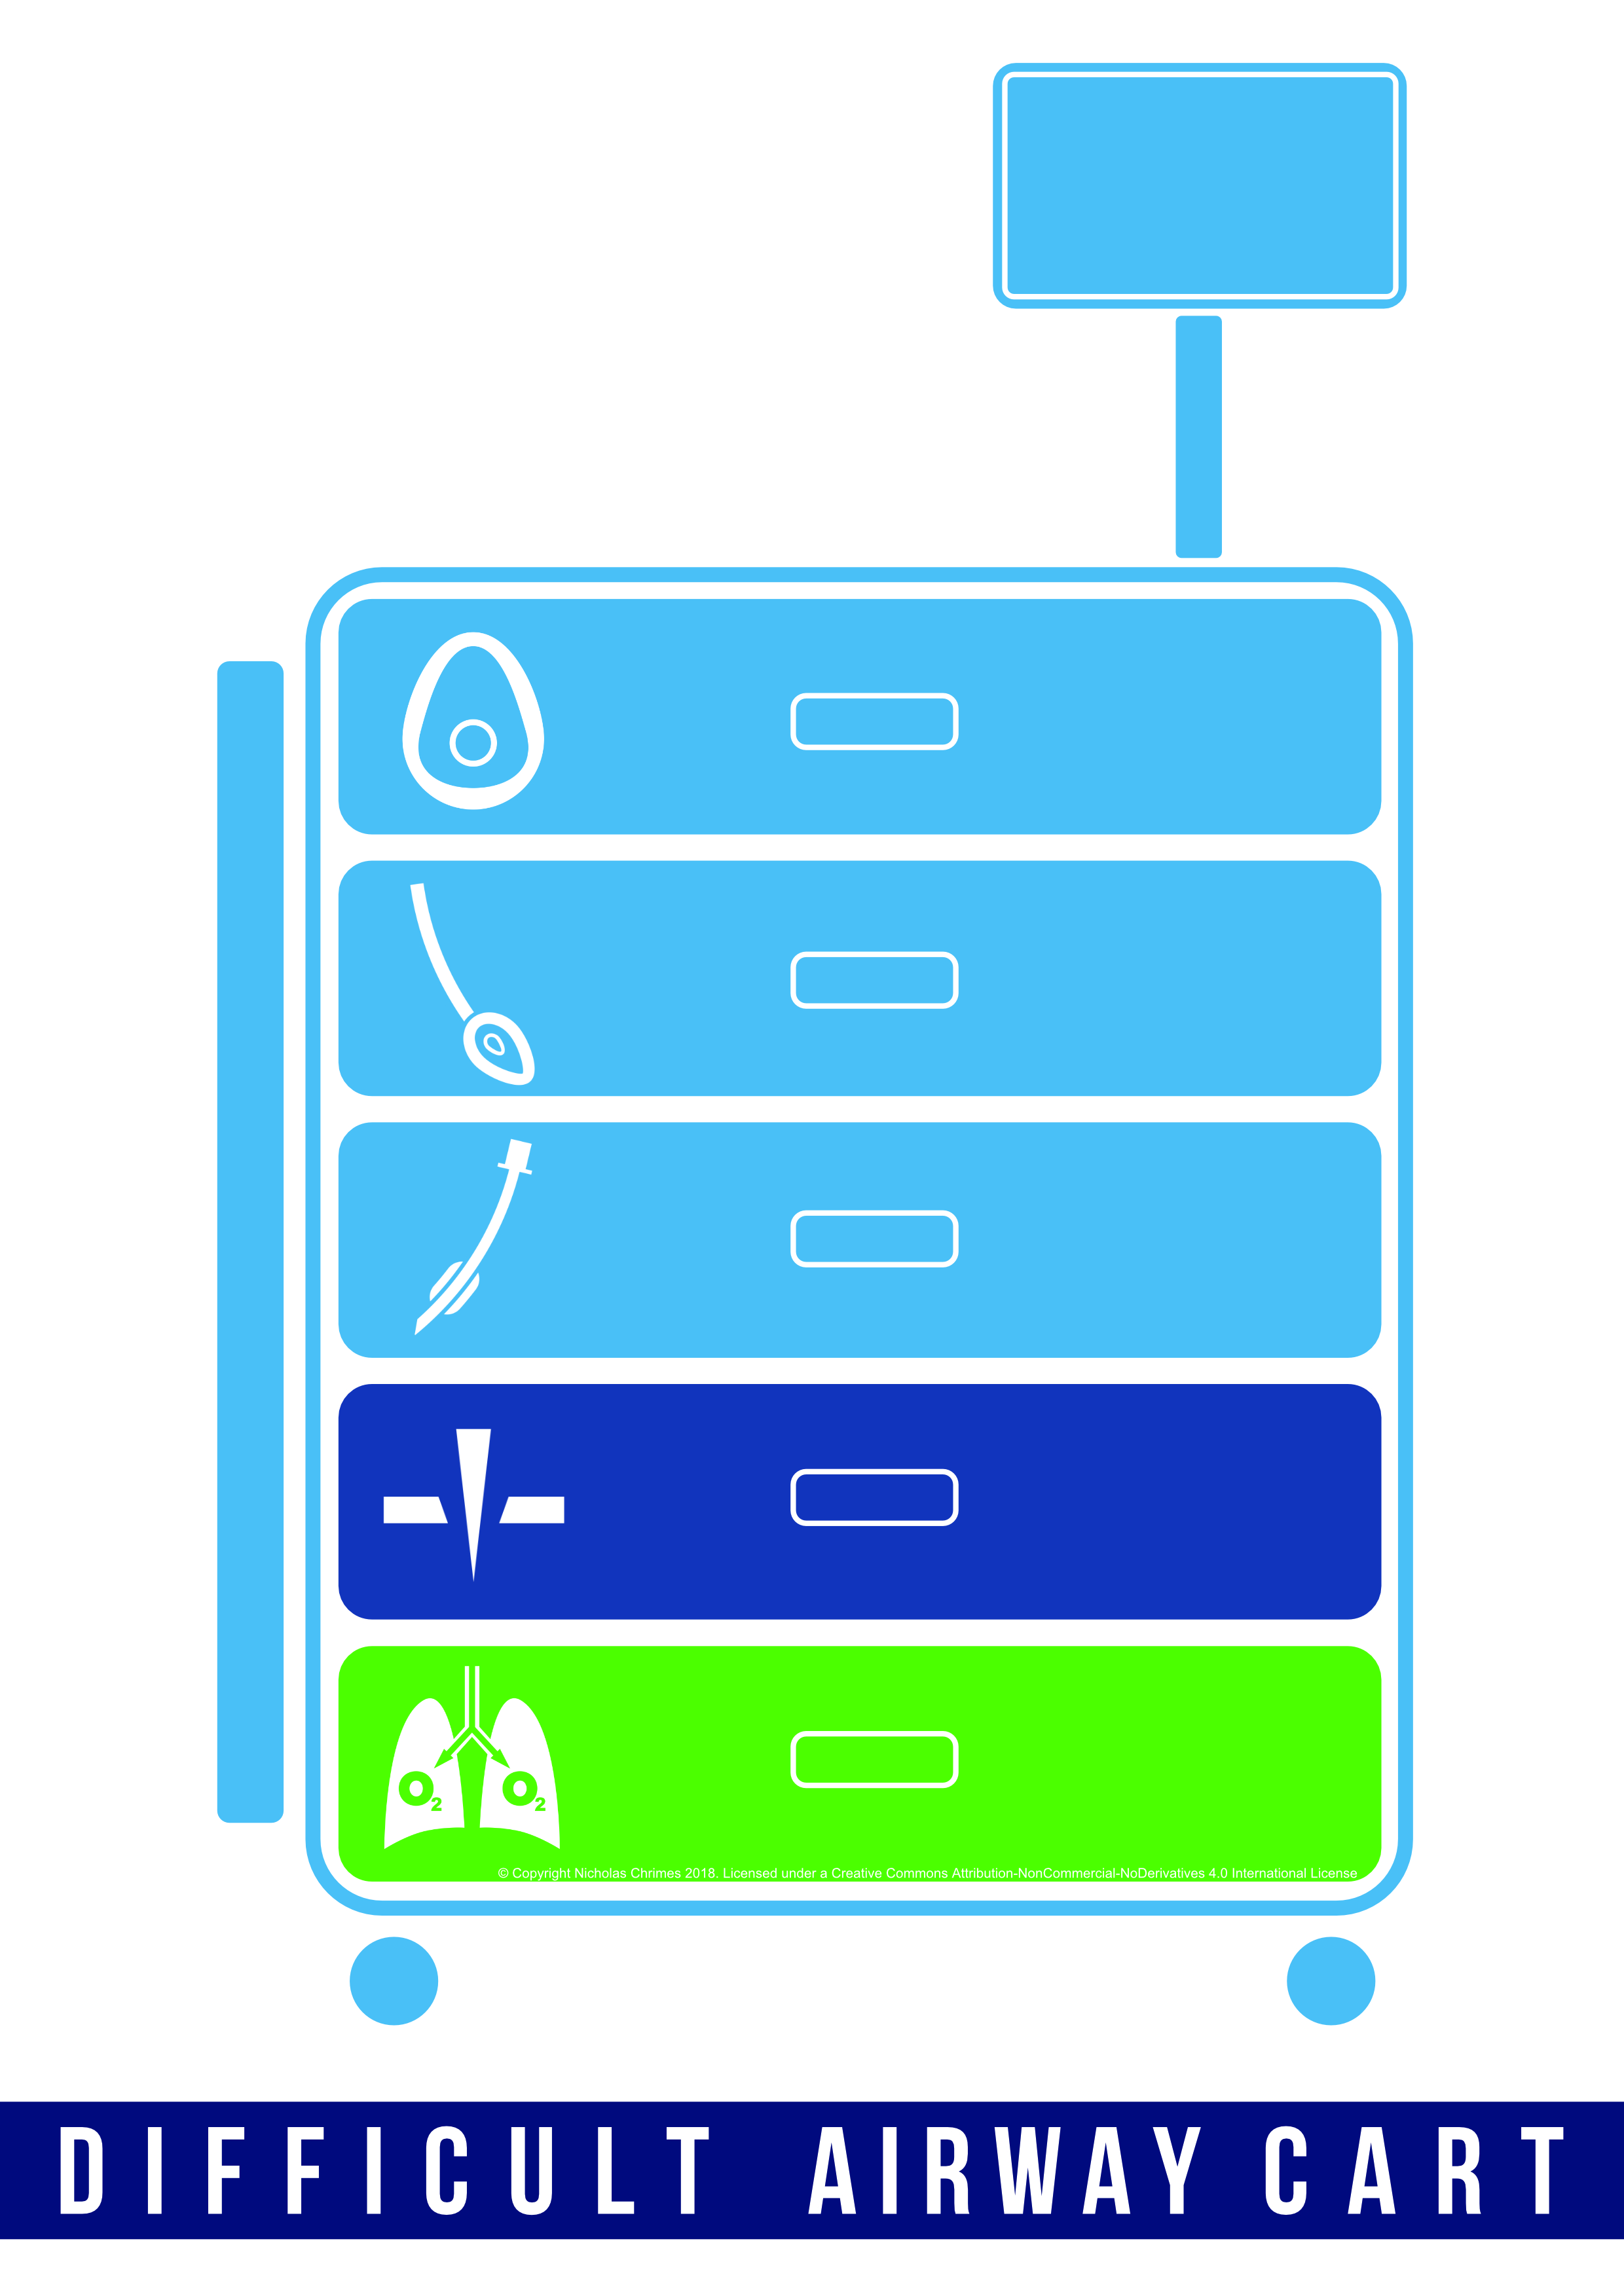 Difficult Airway Cart Sign with Text